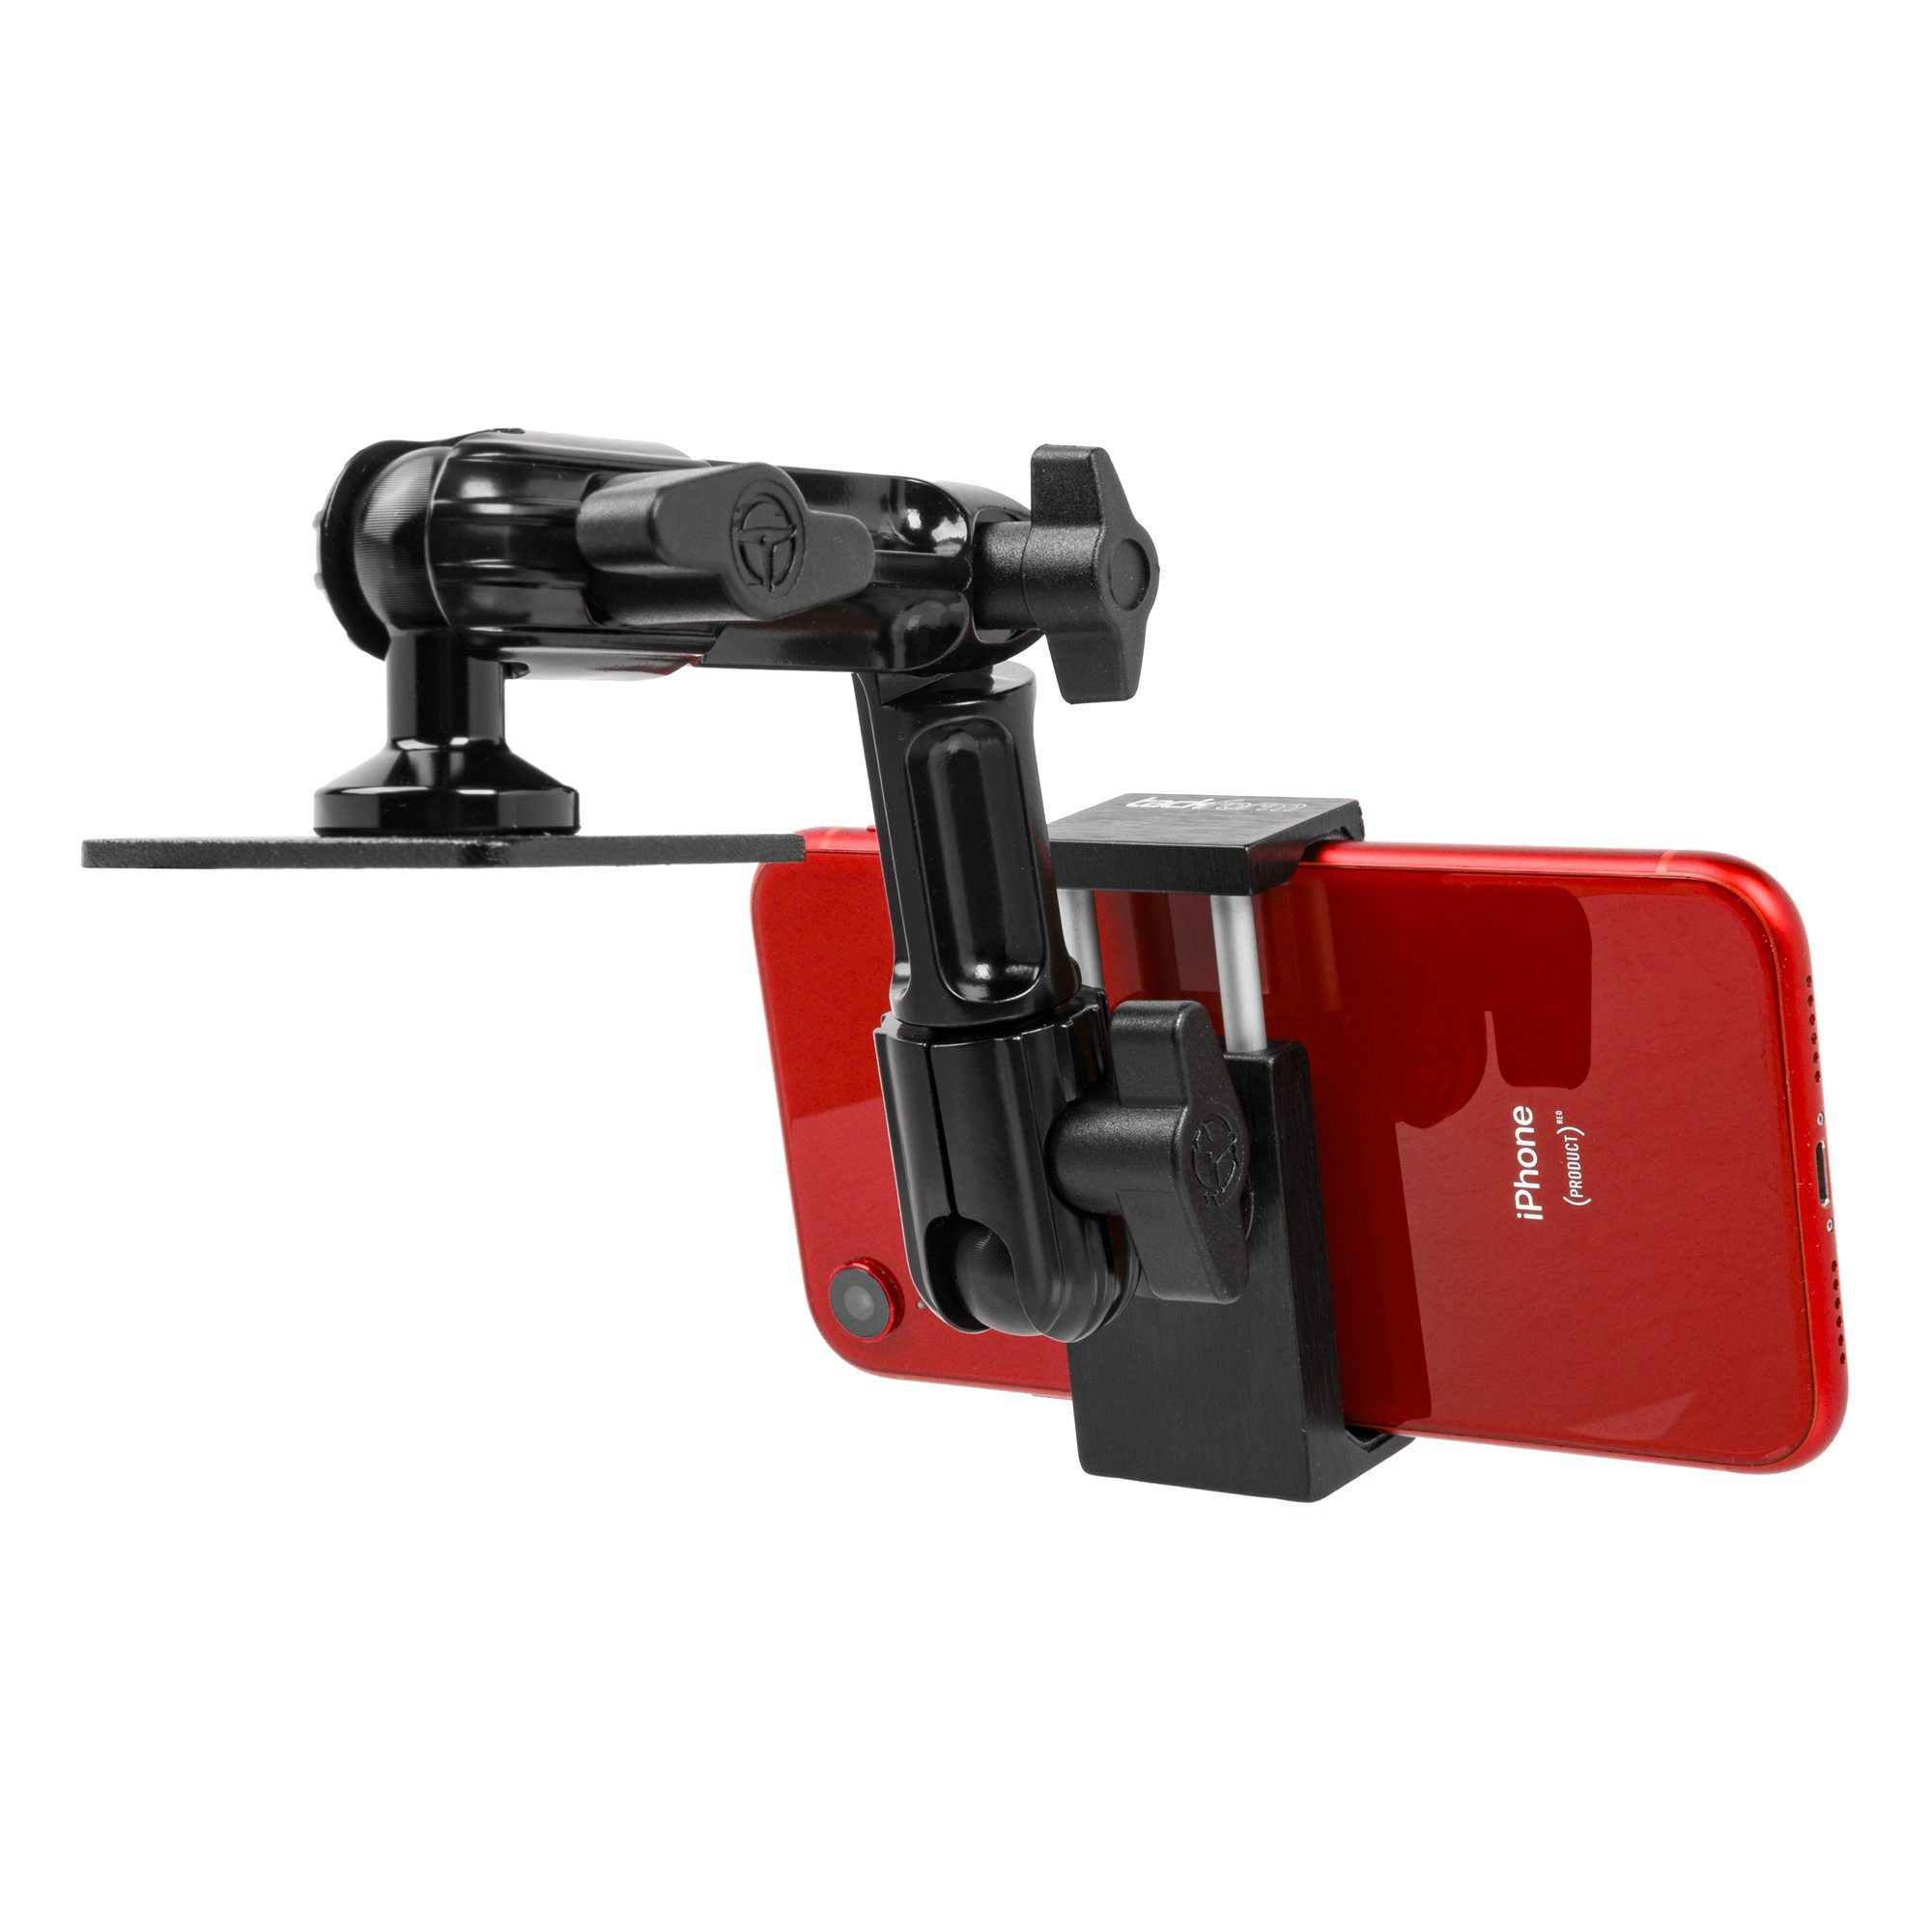 Iphone Holder for vehicle with Drill Base